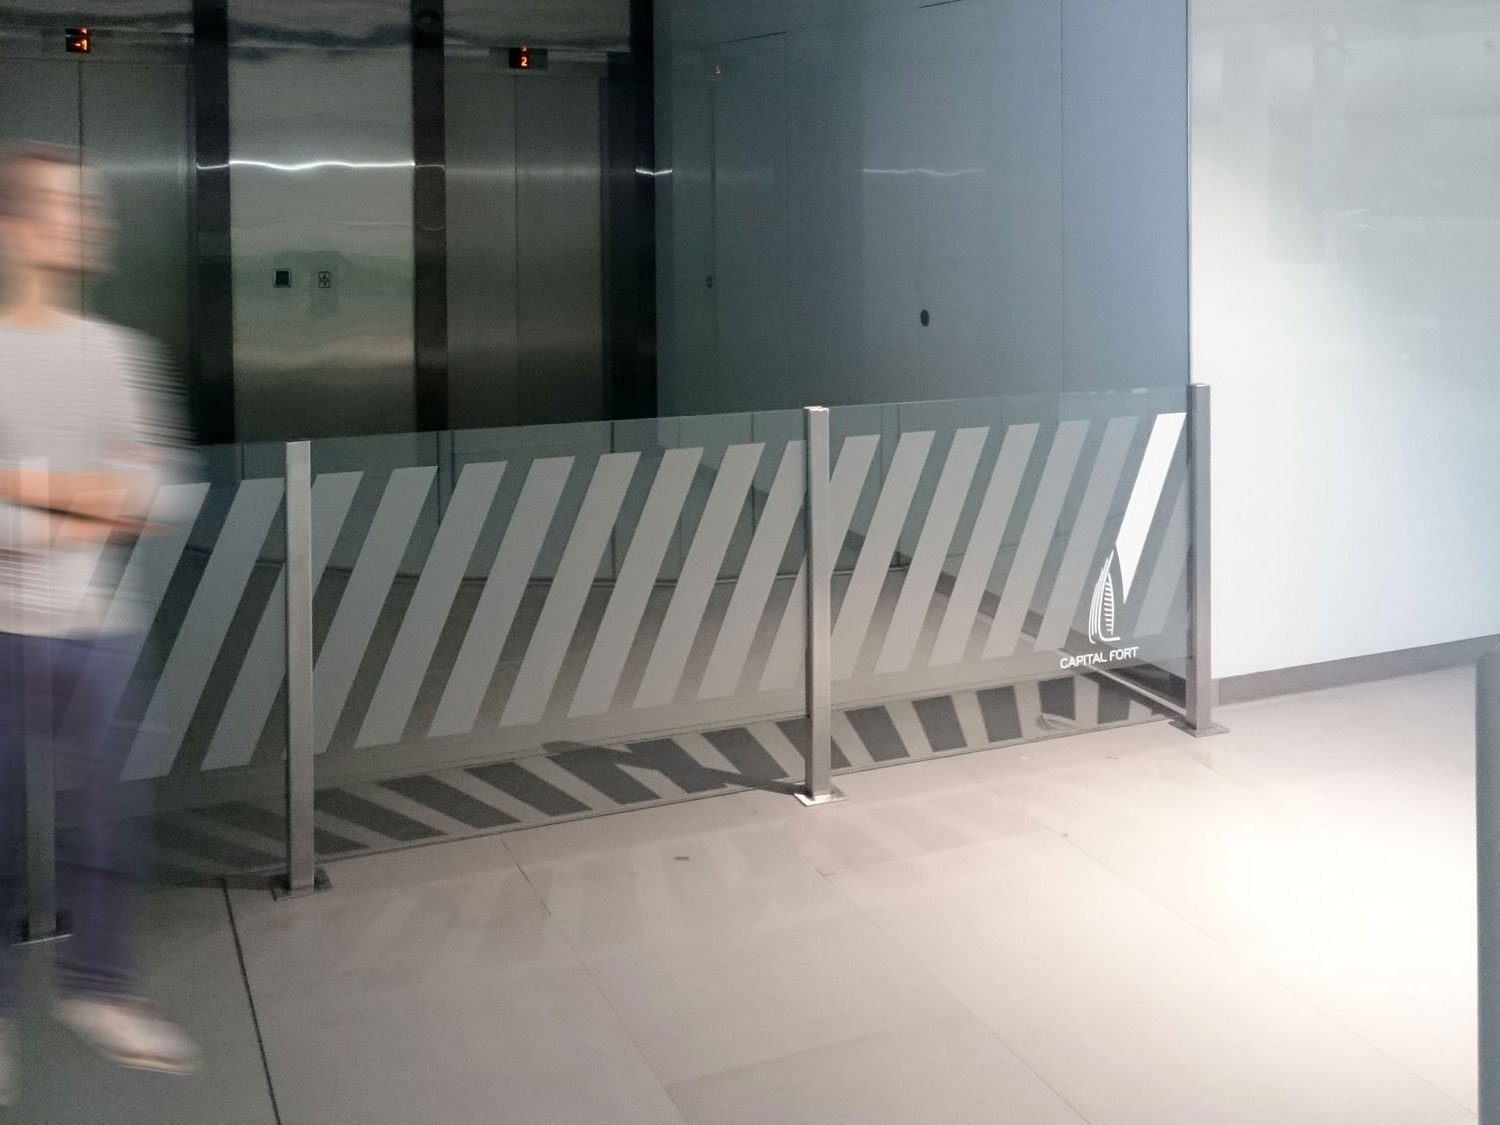 Glass barrier branded with Capital Fort logo and grey diagonal stripes